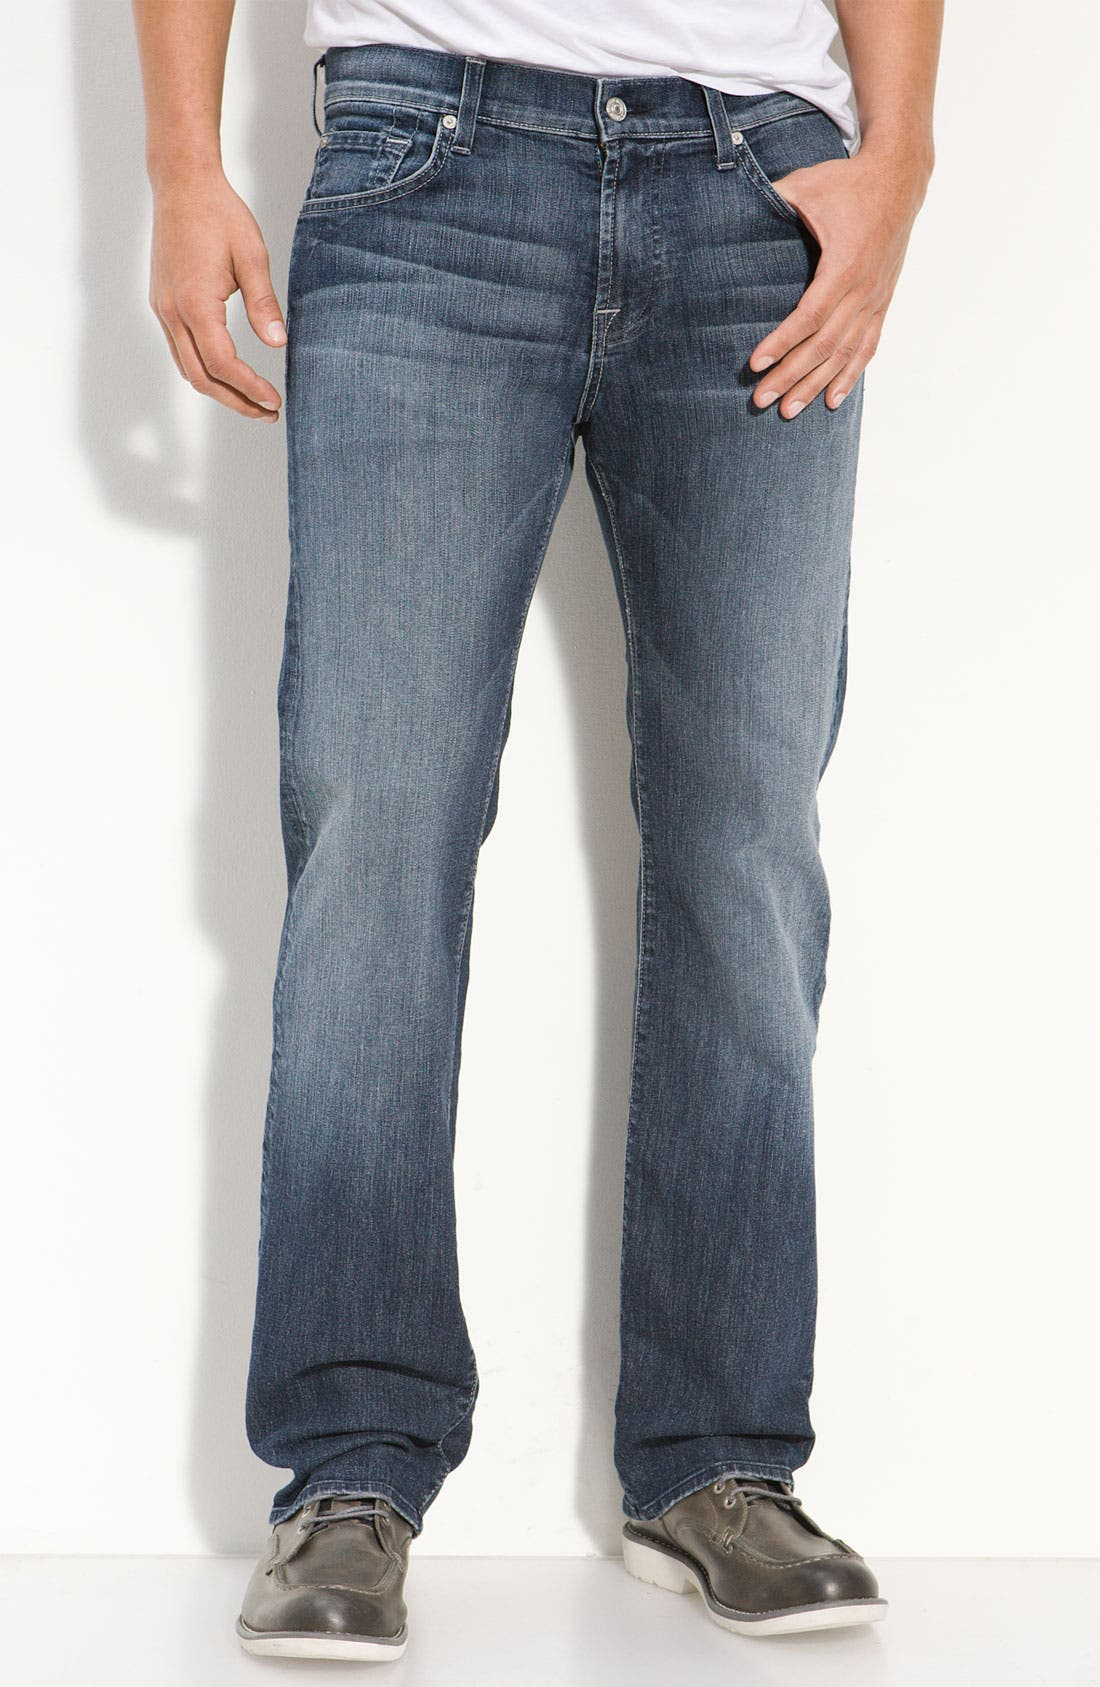 Alternate Image 1 Selected - 7 For All Mankind® 'Austyn' Relaxed Fit Jeans (New Fiji)